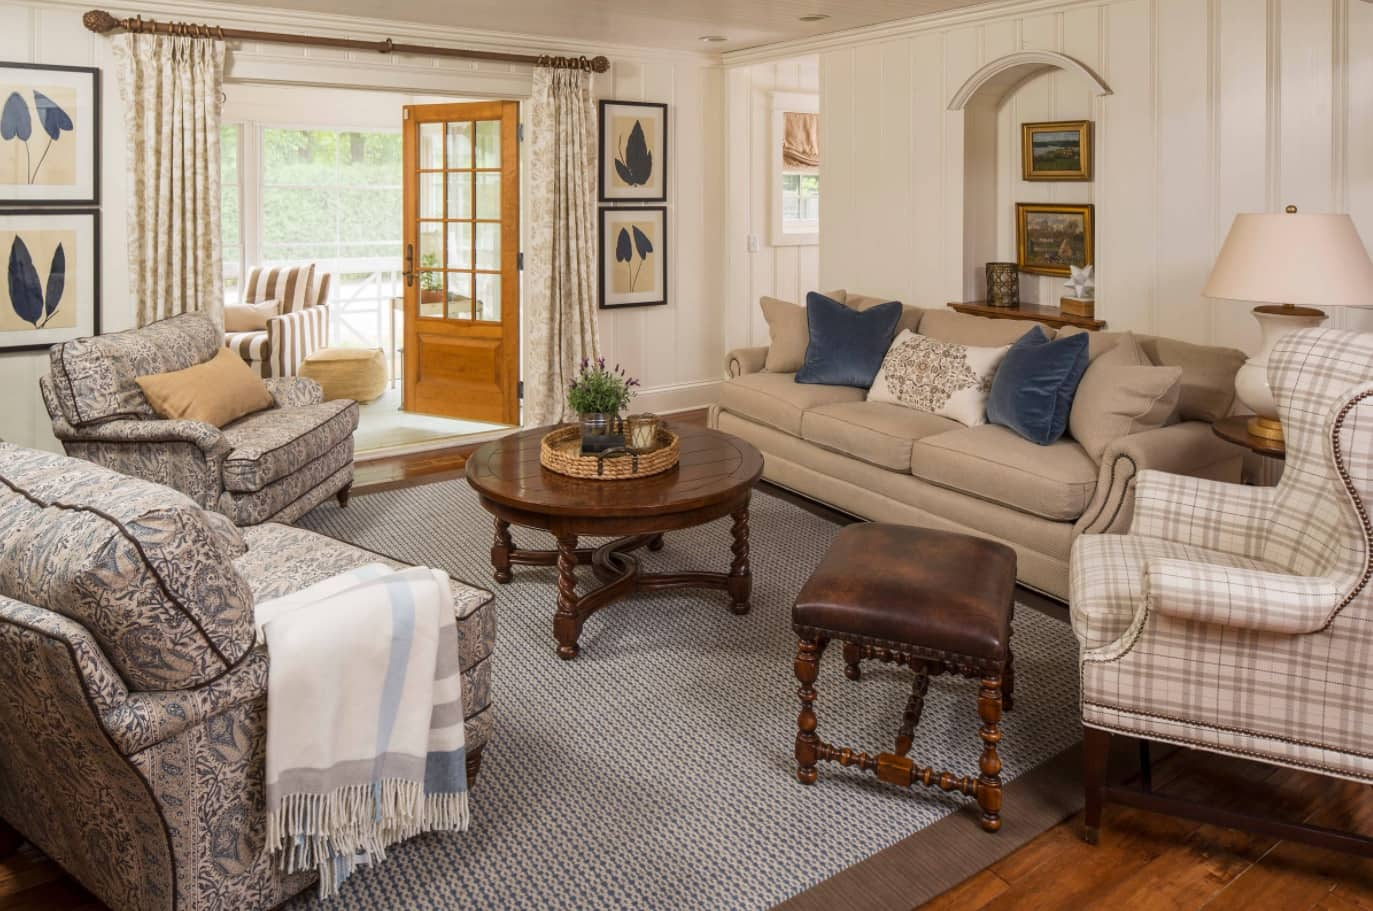 Classic styled studio layout of the private house's first floor